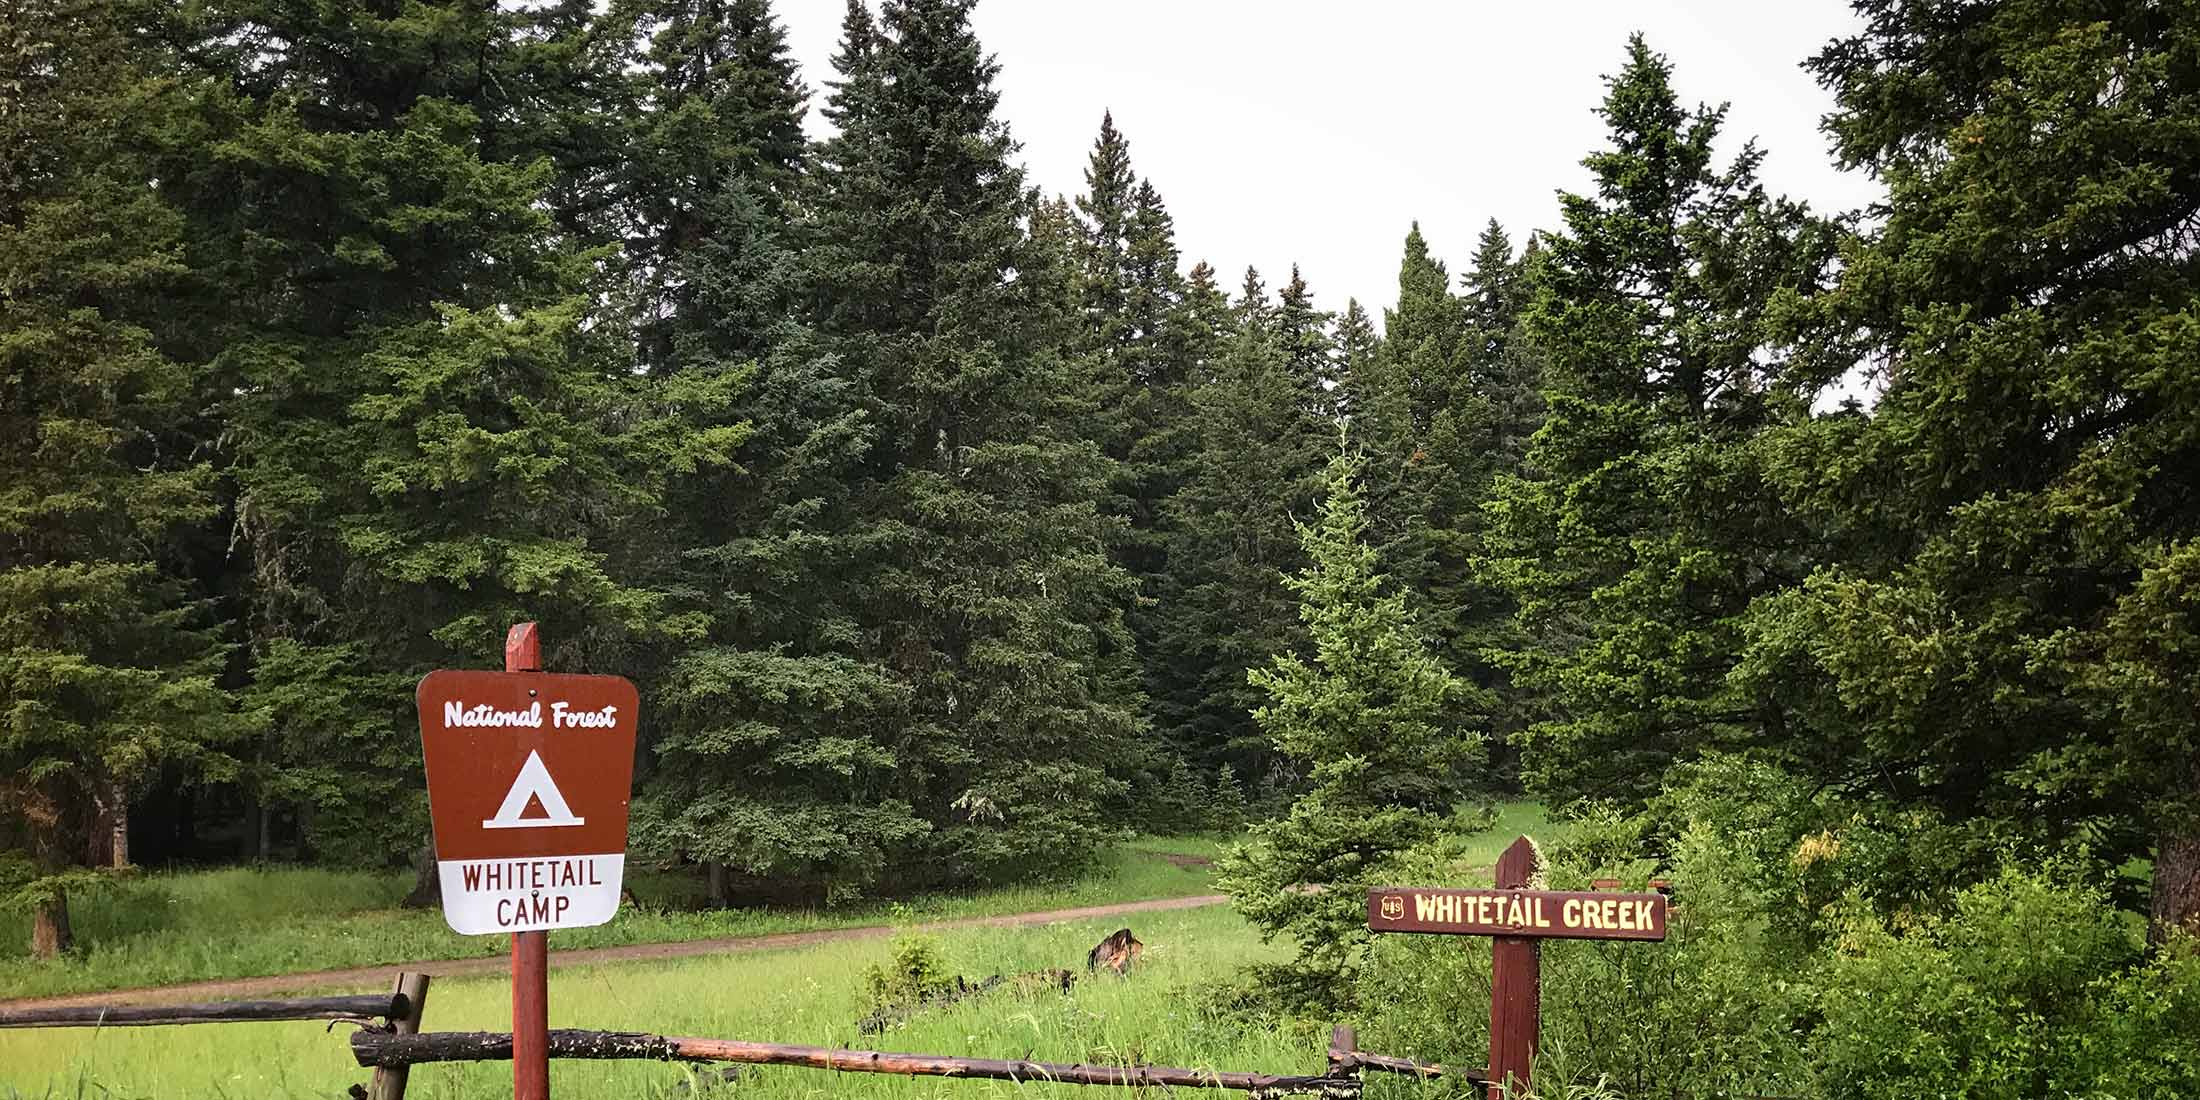 Information about Whitetail Campground located in the Little Belt Mountain Range, Montana.